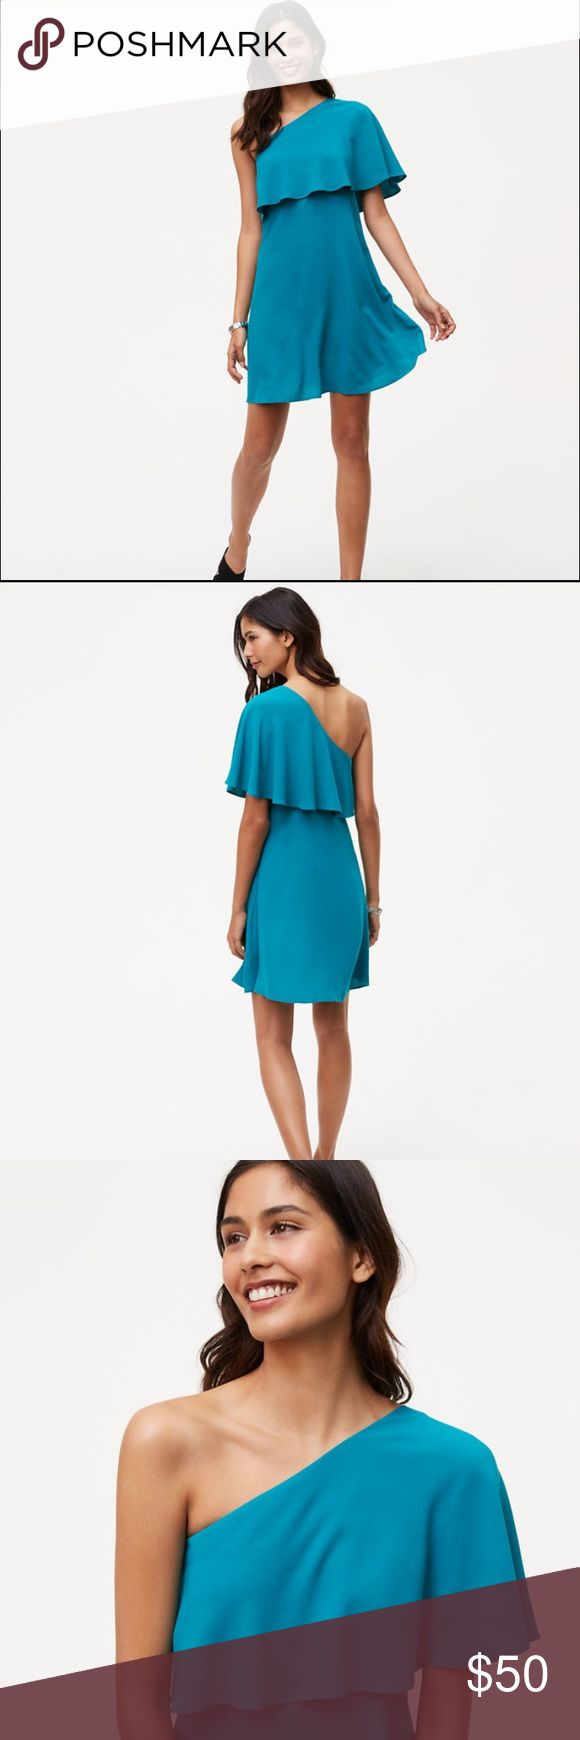 """Ann Taylor One Shoulder Flounce Dress Perfect for a summer wedding! Very lightweight and comfortable. I bought a 6 and an 8 but ended up wearing the 6 (pictured here). I am 5'6"""". Ann Taylor Dresses One Shoulder"""